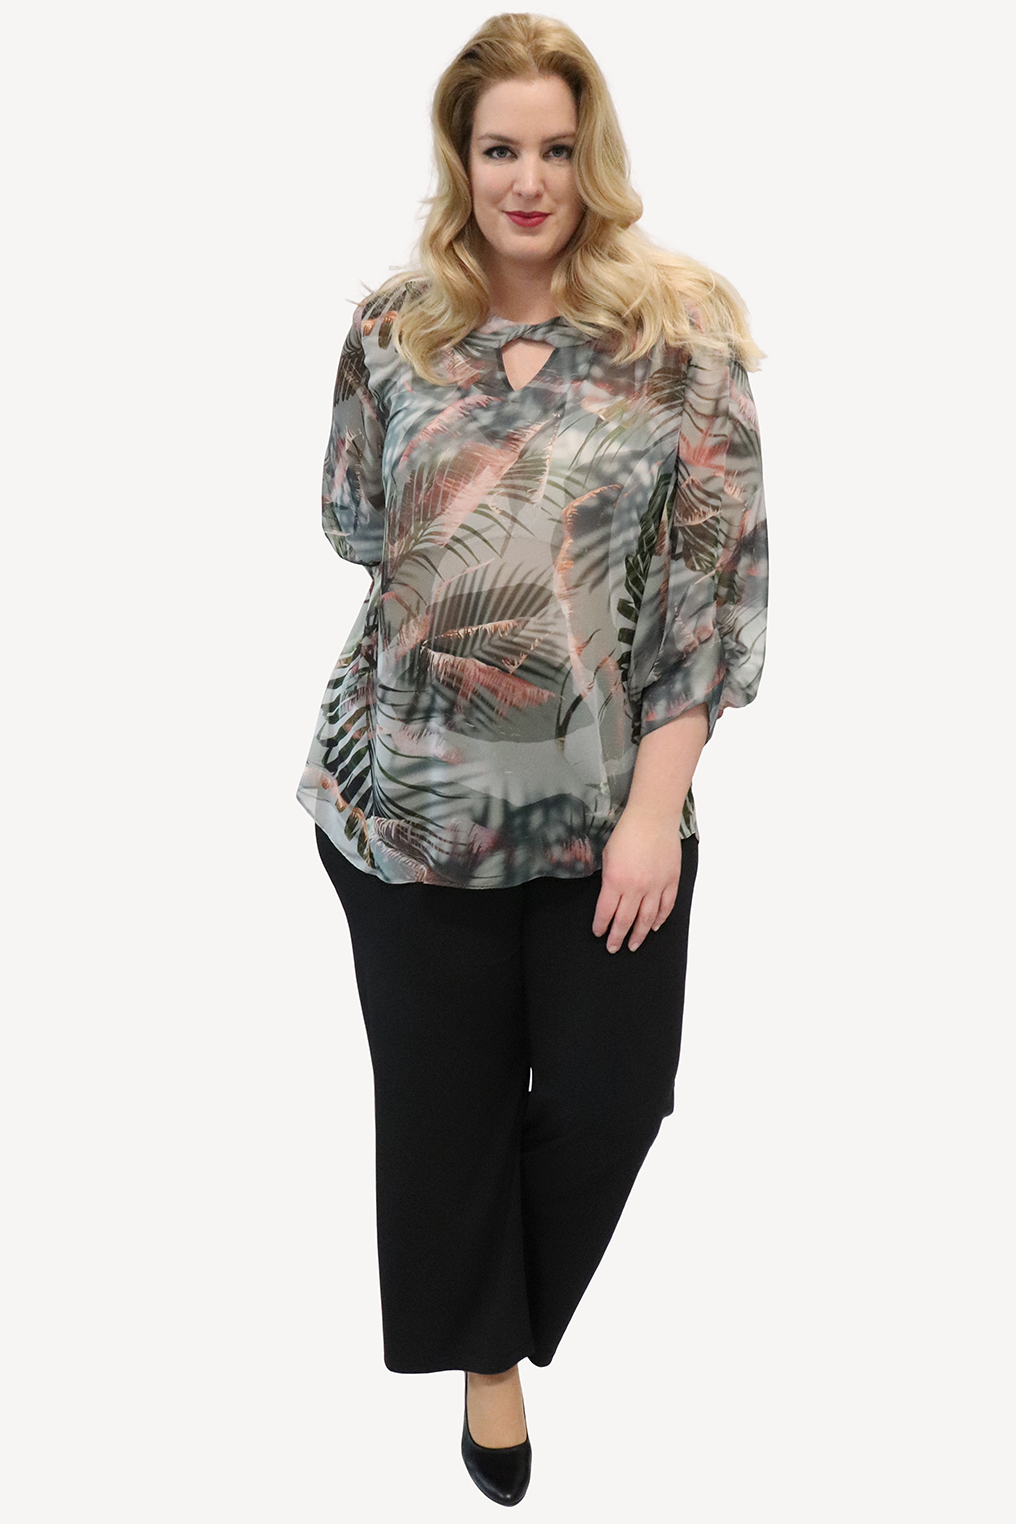 Blouse  Roos Ophilia sh